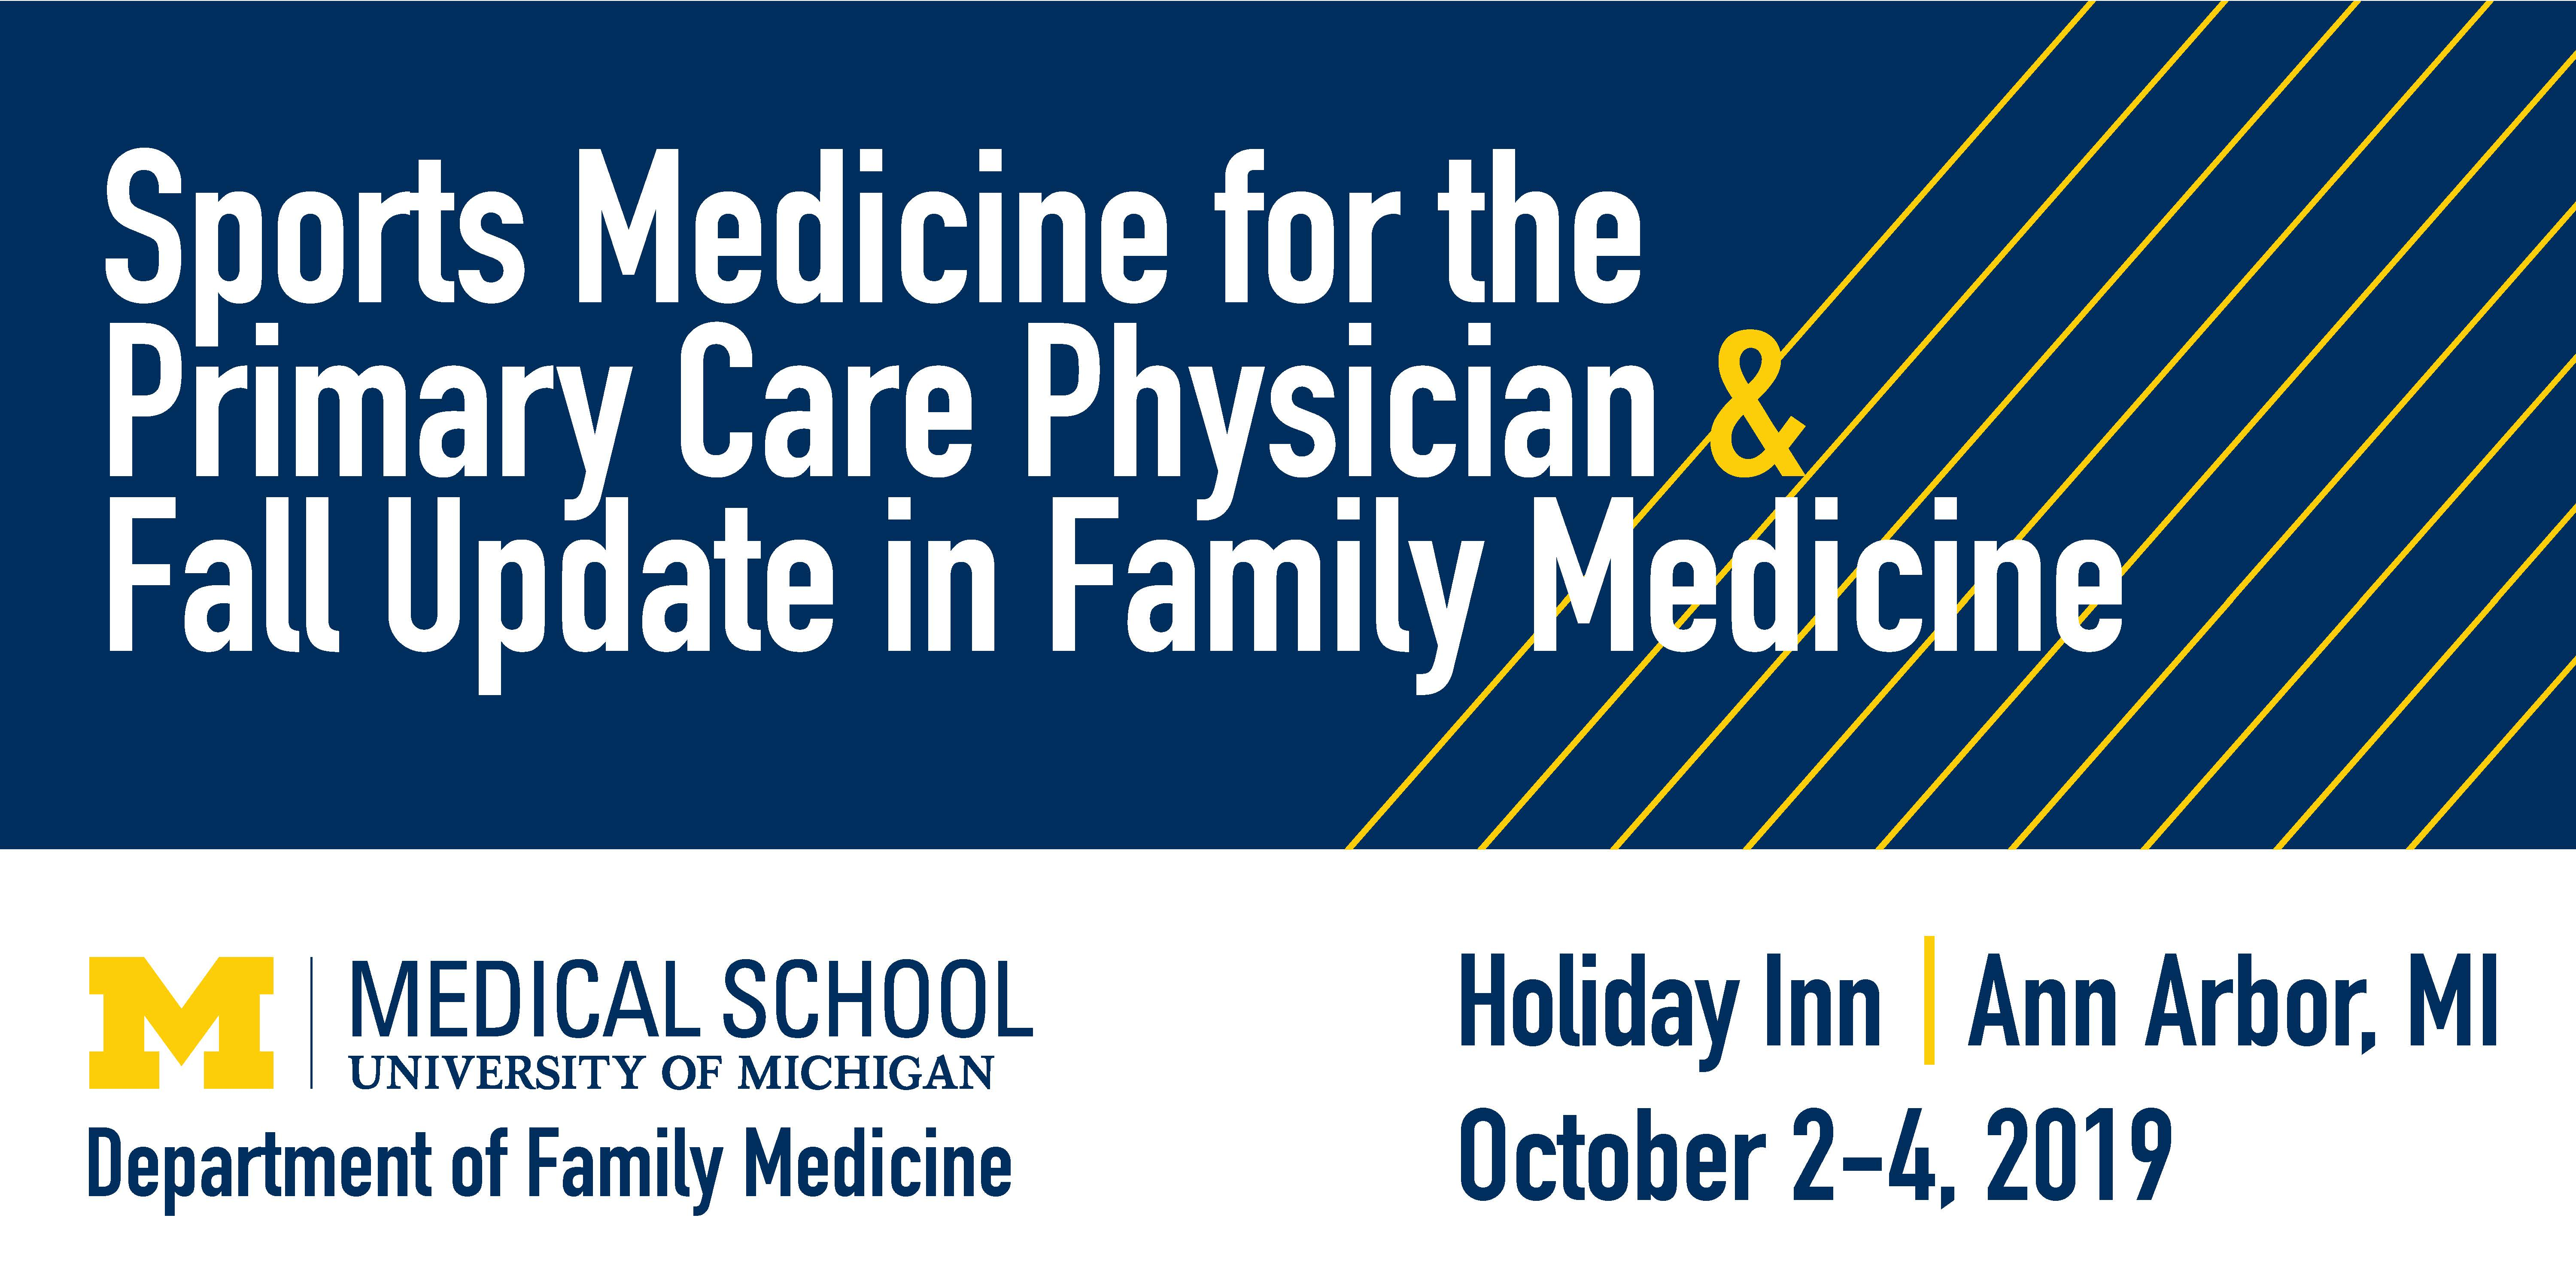 2019 Sports Medicine for the Primary Care Physician & Fall Update in Family Medicine